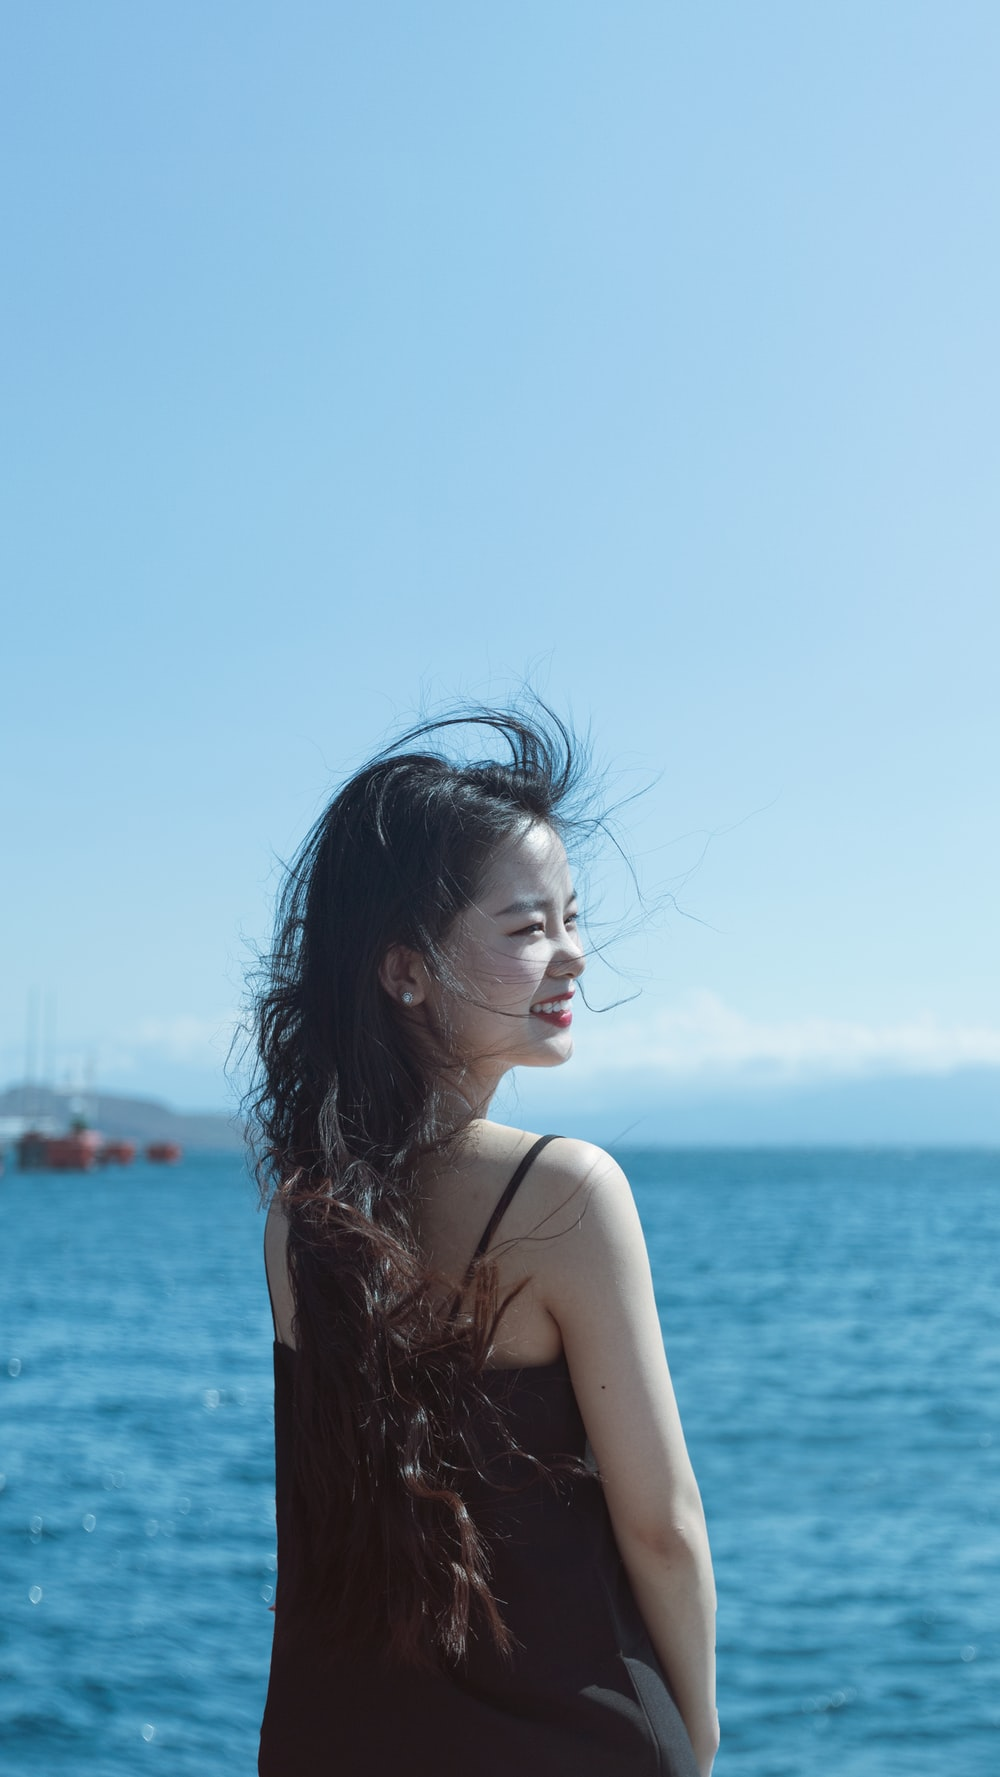 smiling woman standing near body of water during daytime